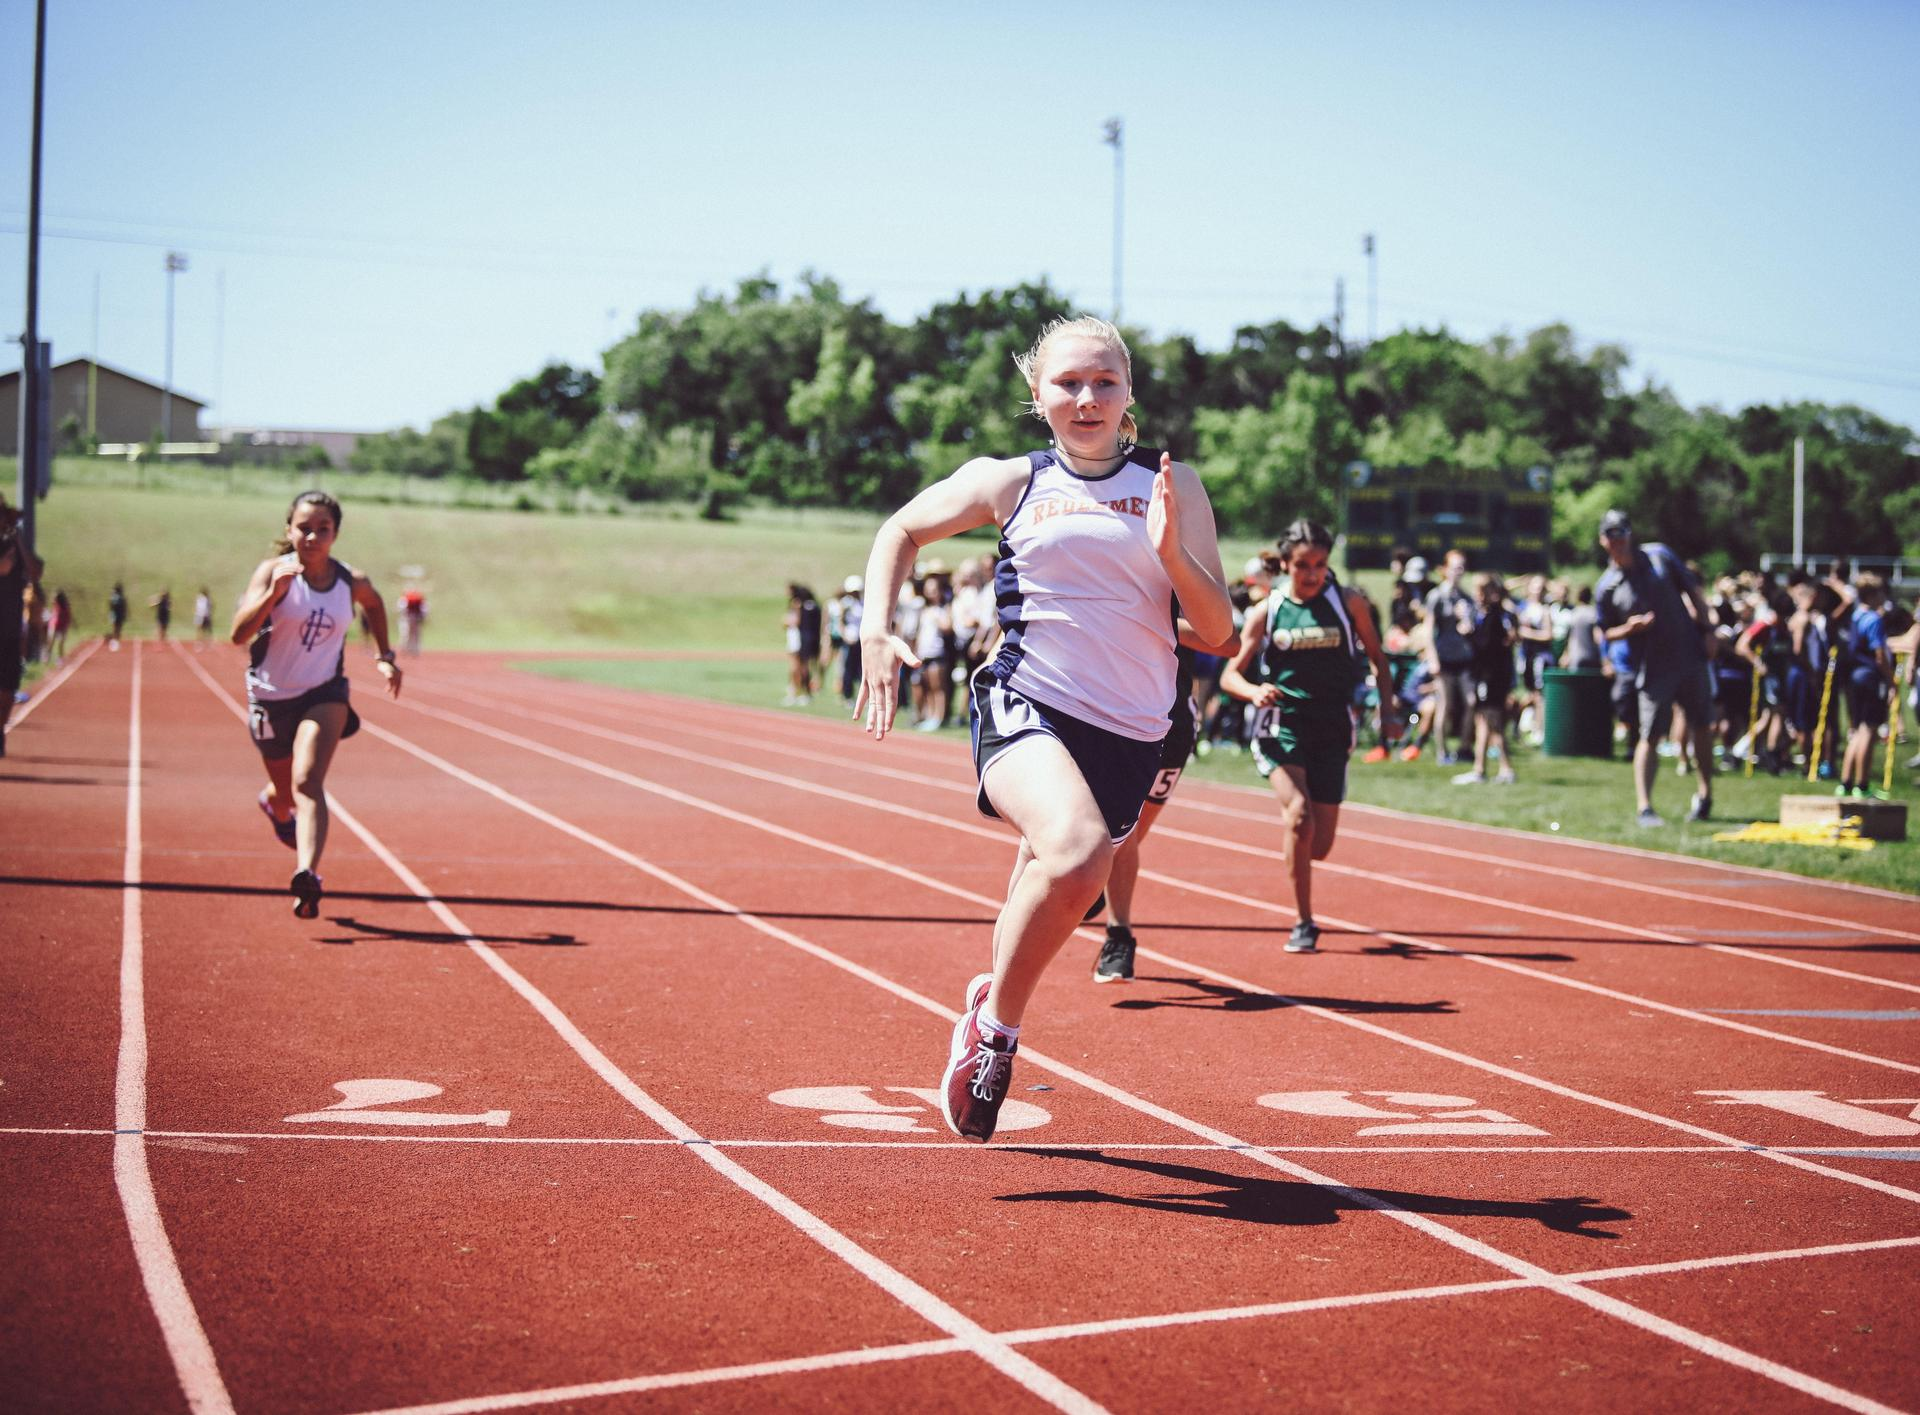 middle school girl running in track meet